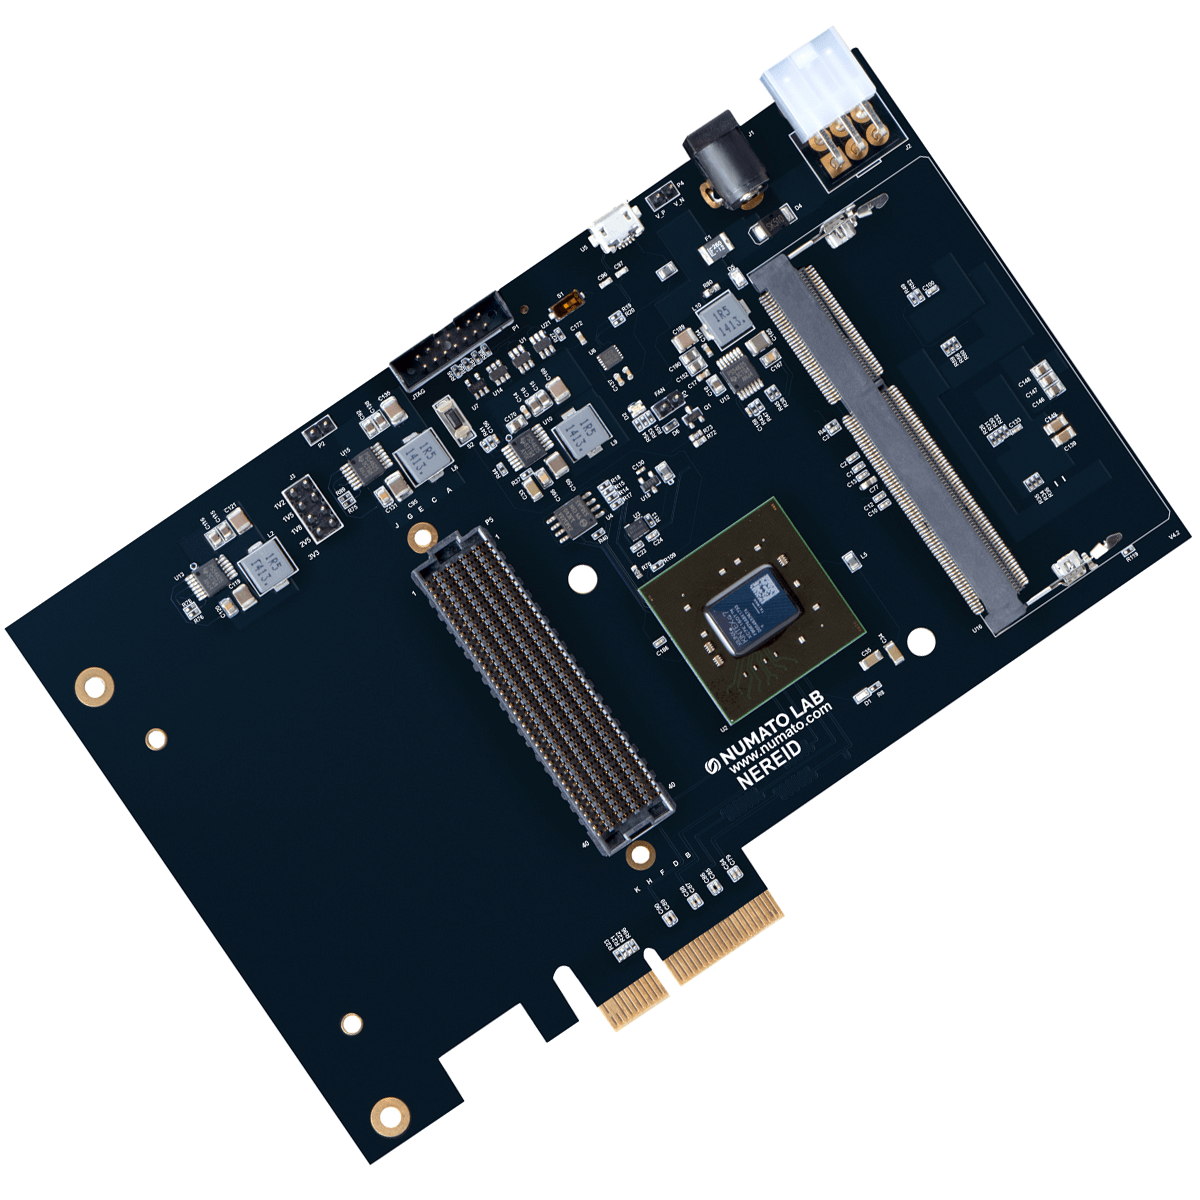 Nereid Kintex 7 PCI Express FPGA Development Board